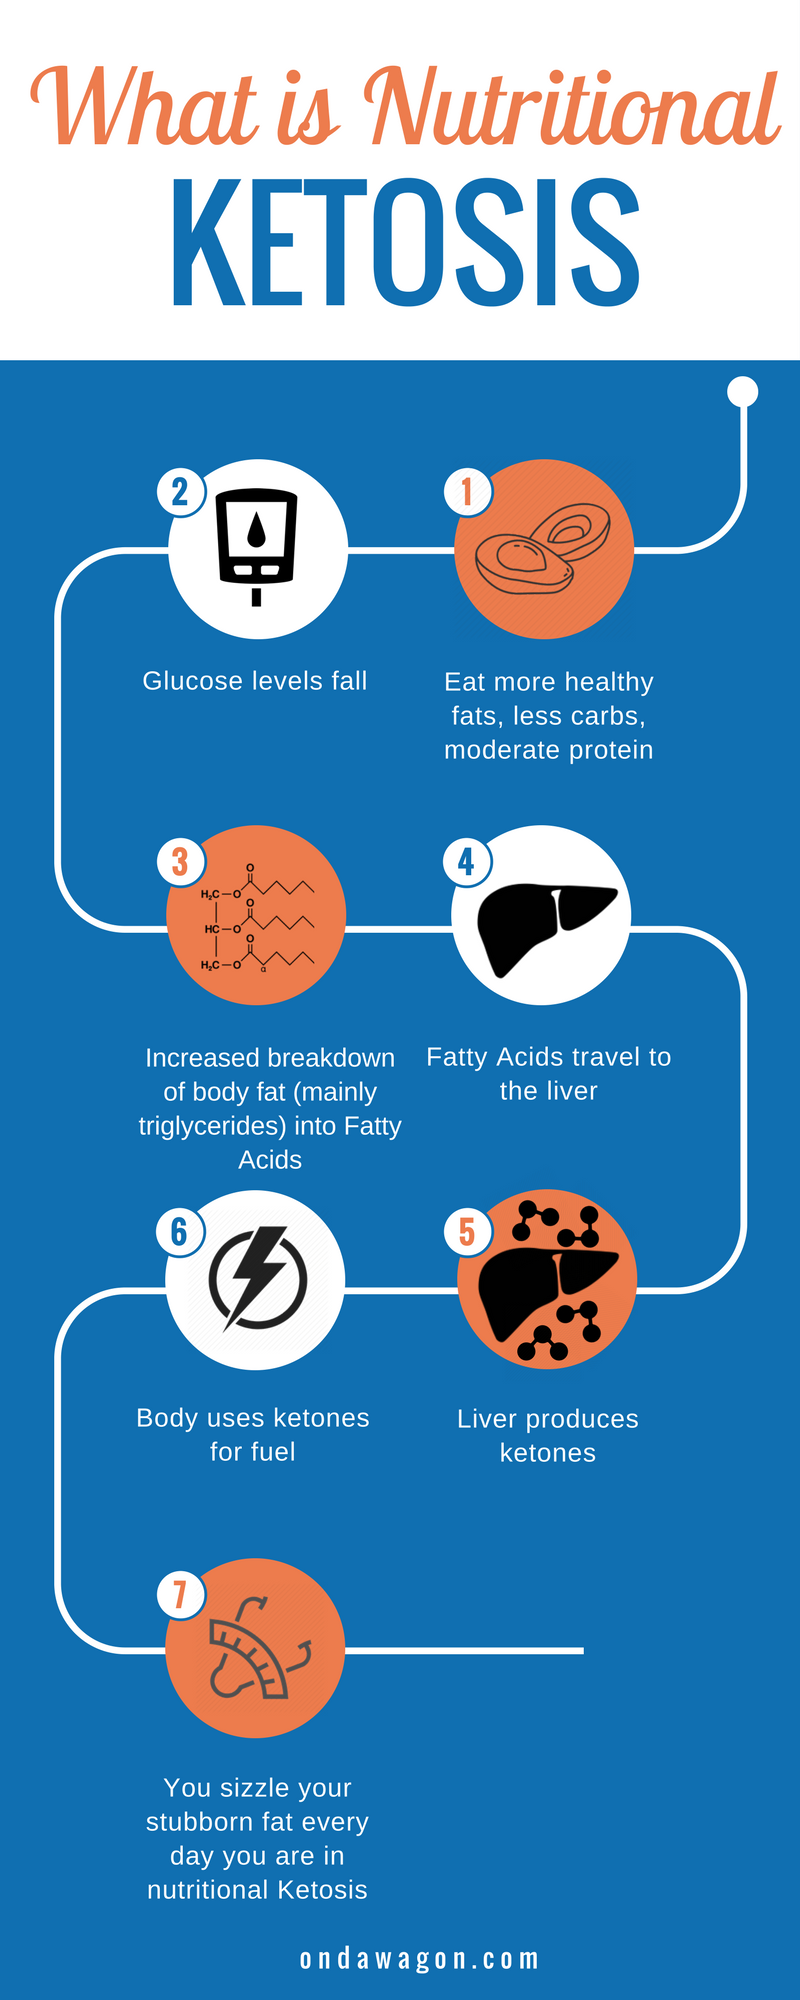 What is Nutritional Ketosis